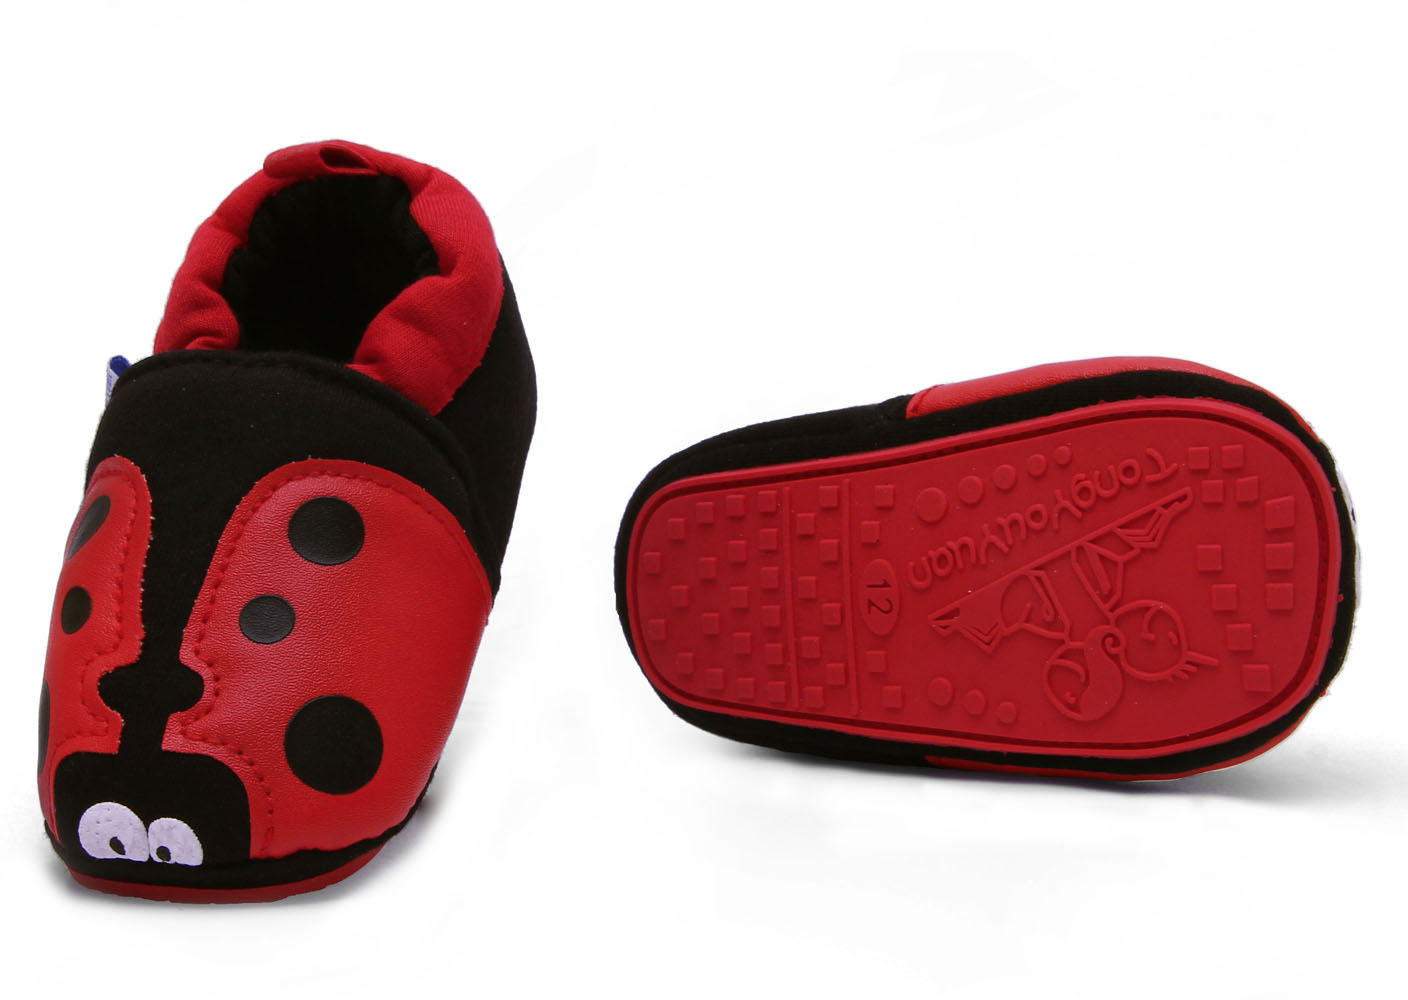 Toddler Baby ladybug First shoes soft Rubber soles crib shoes Age 0 to 18 months